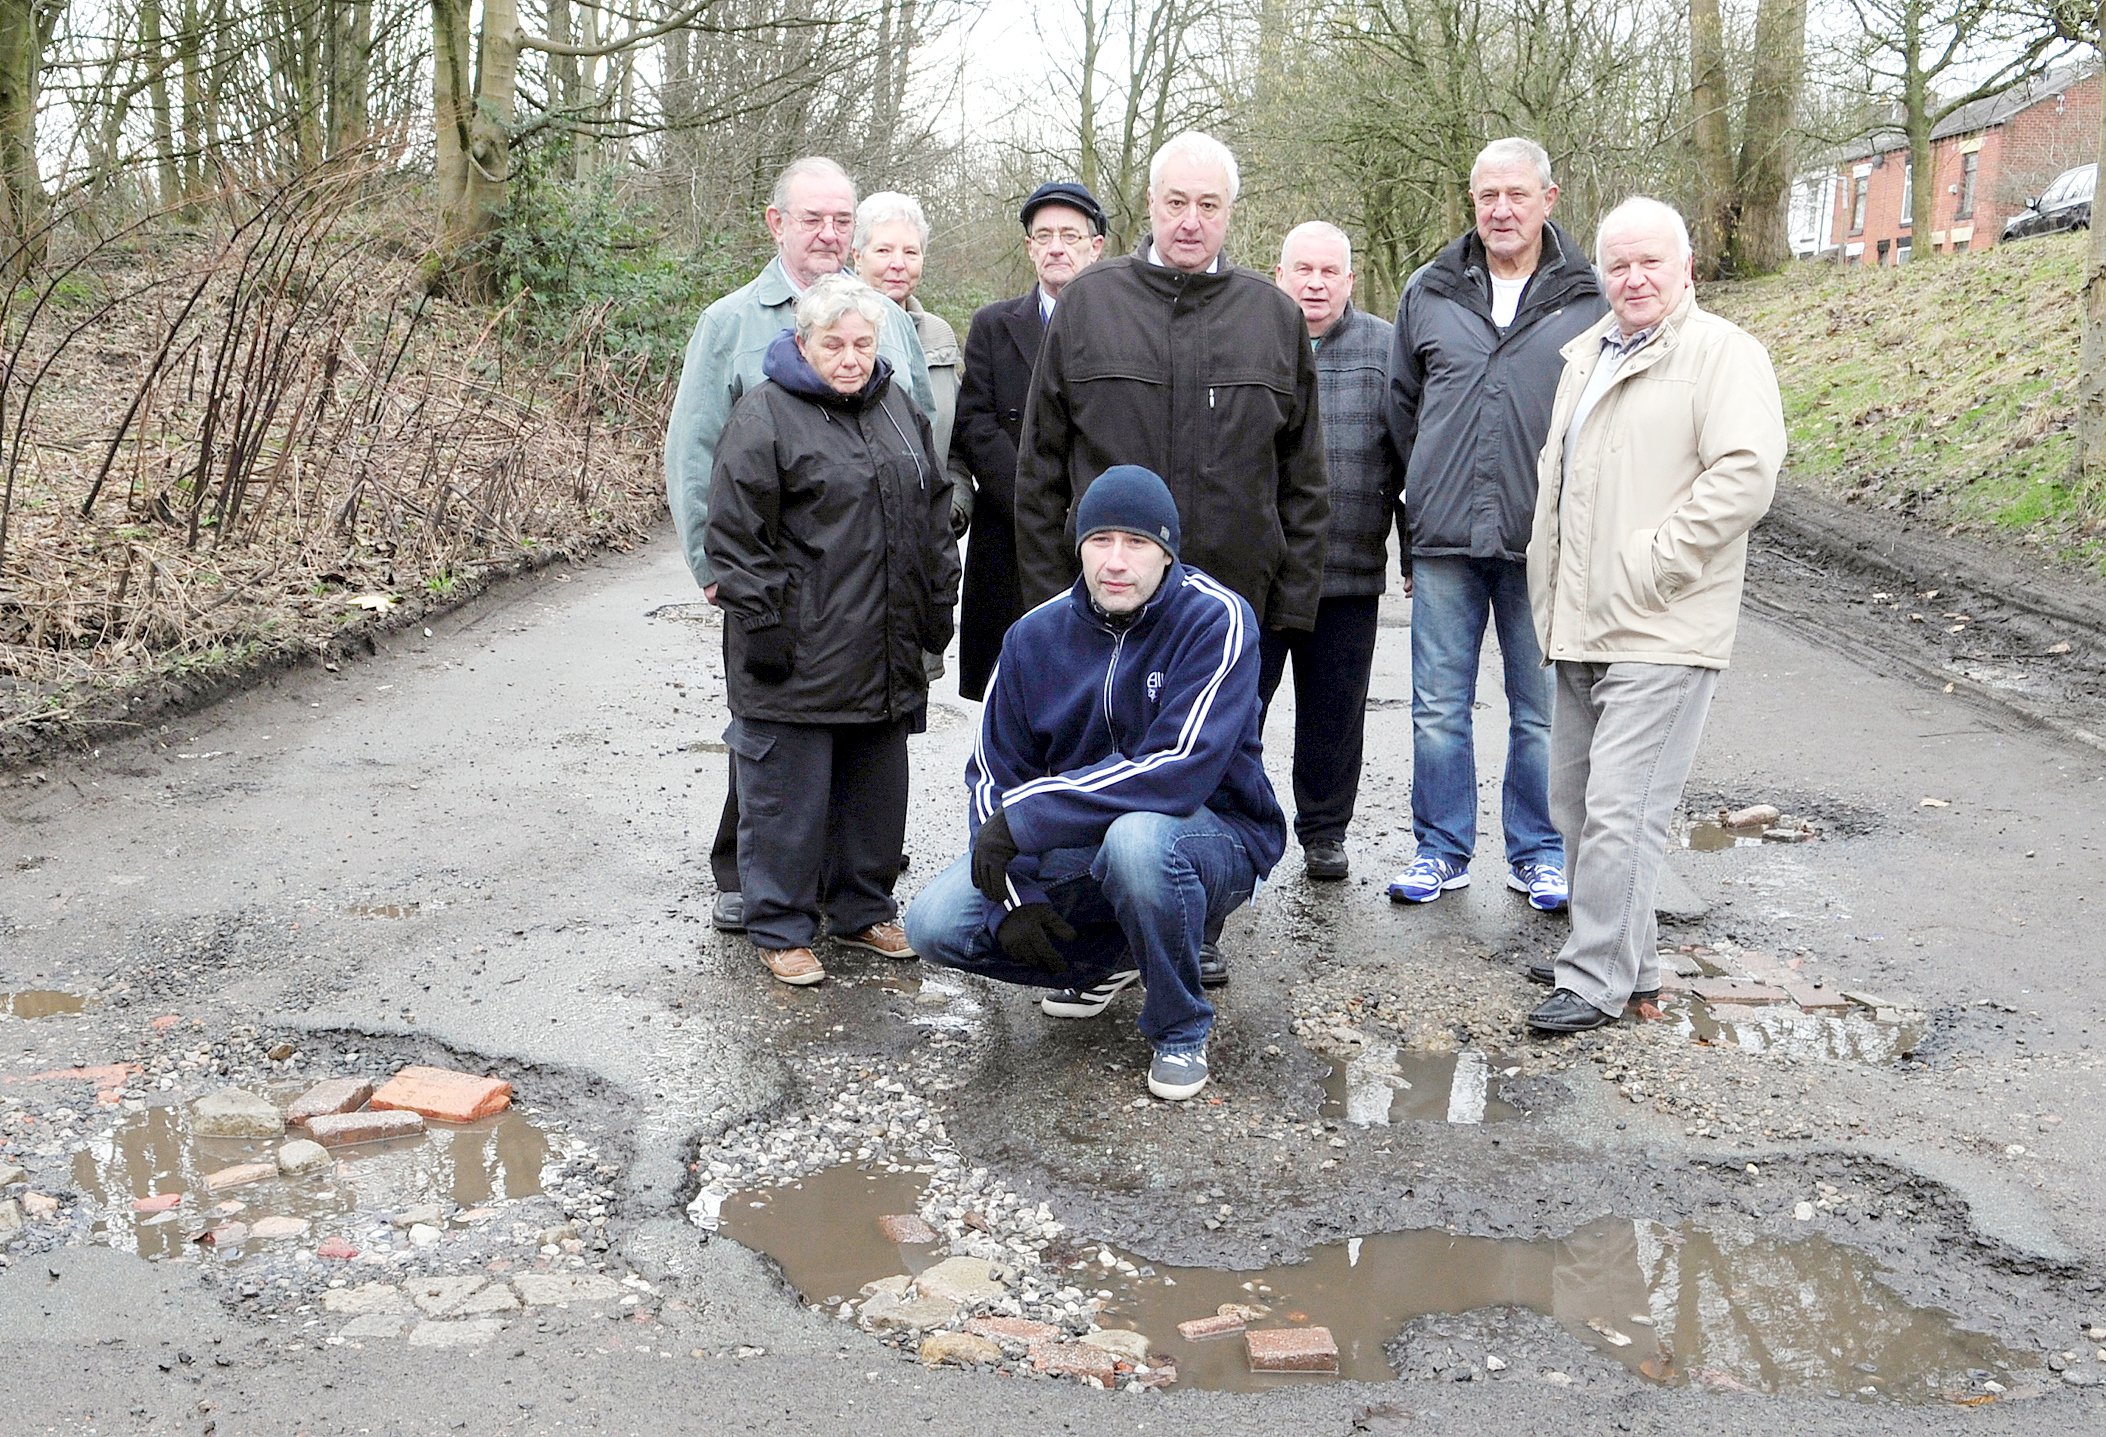 Darcy Lever pothole hell may end if new cycle route goes ahead